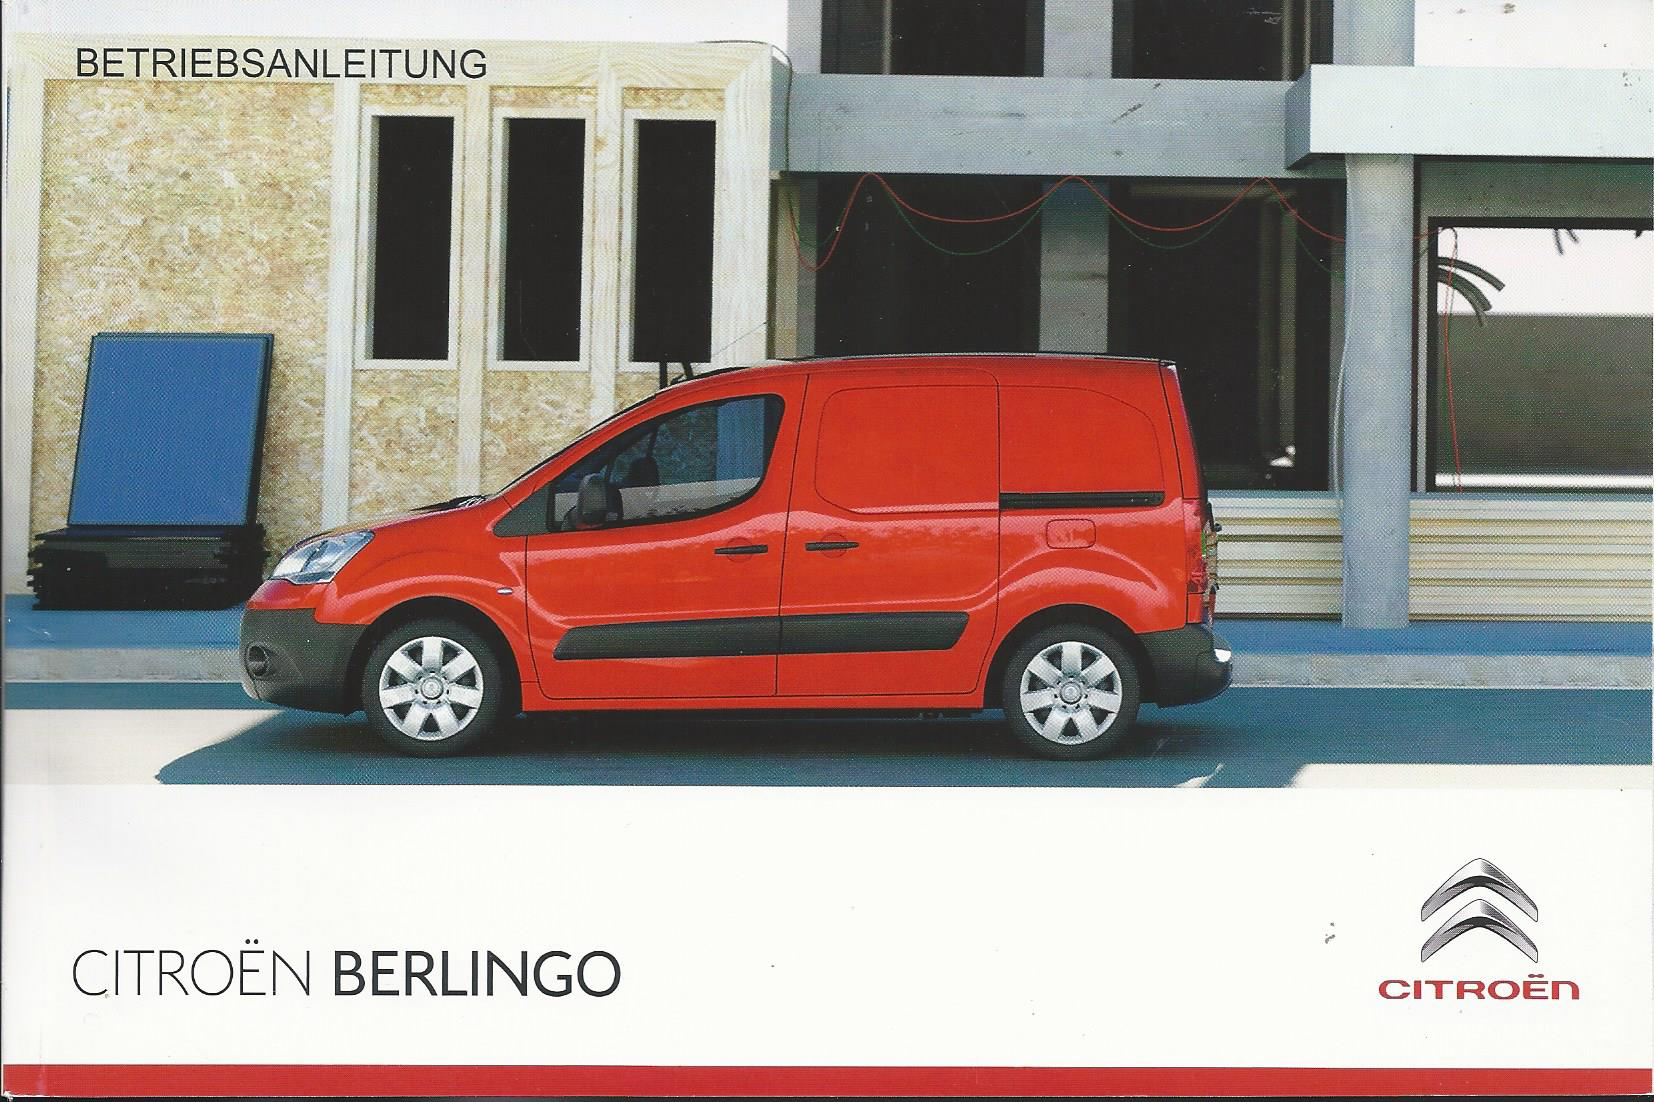 citroen berlingo 2 betriebsanleitung 2013 bedienungsanleitung handbuch b9 ba ebay. Black Bedroom Furniture Sets. Home Design Ideas